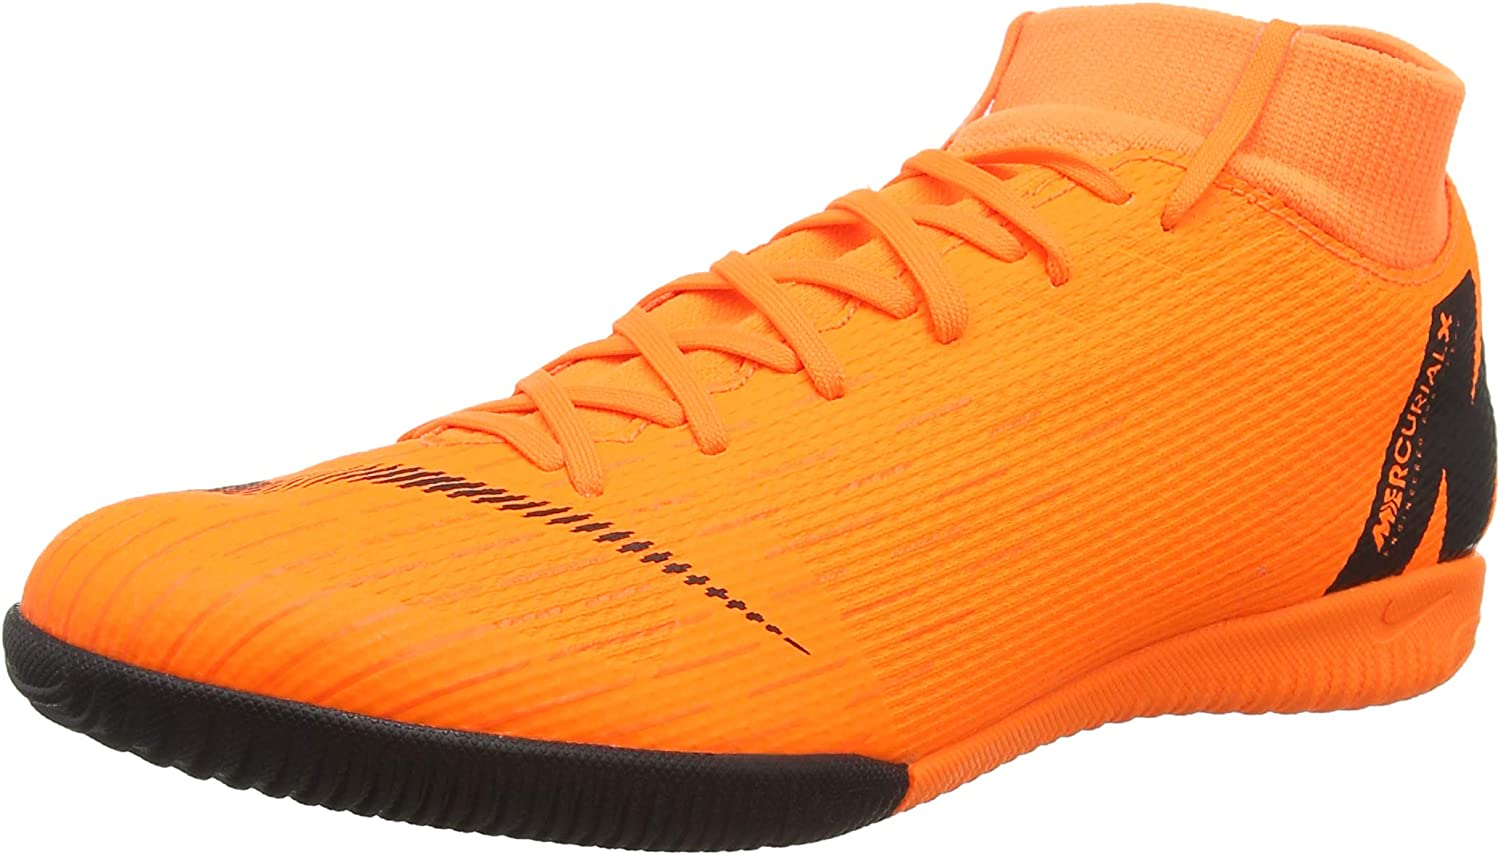 Nike Superfly X Academy Men's Indoor Soccer shoes